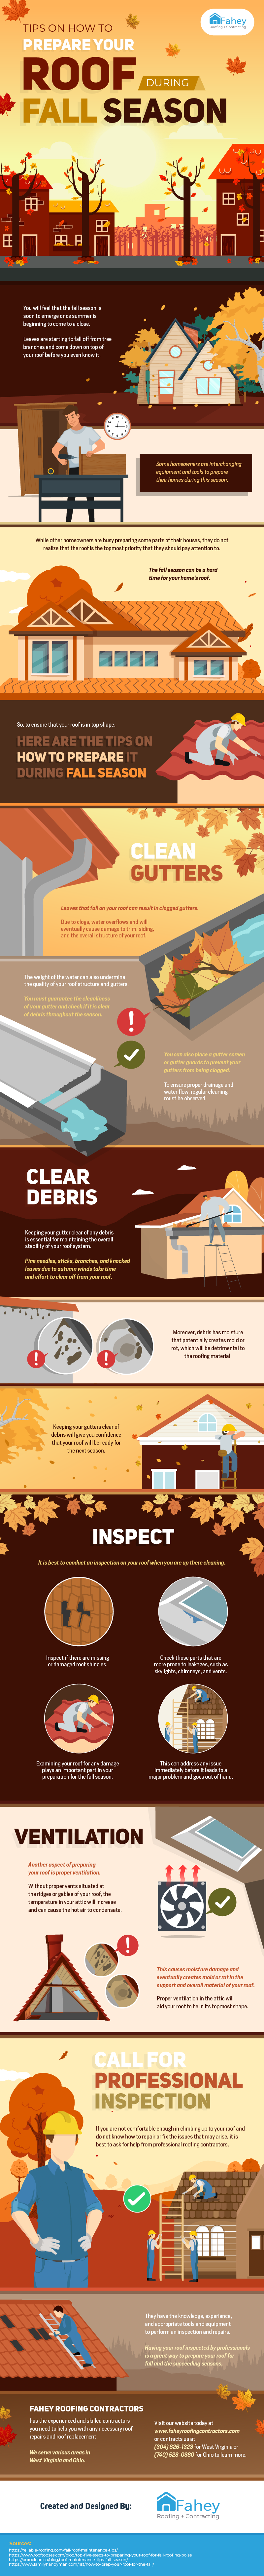 Tips-on-how-to-Prepare-your-Roof-during-Fall-Season-Infographic